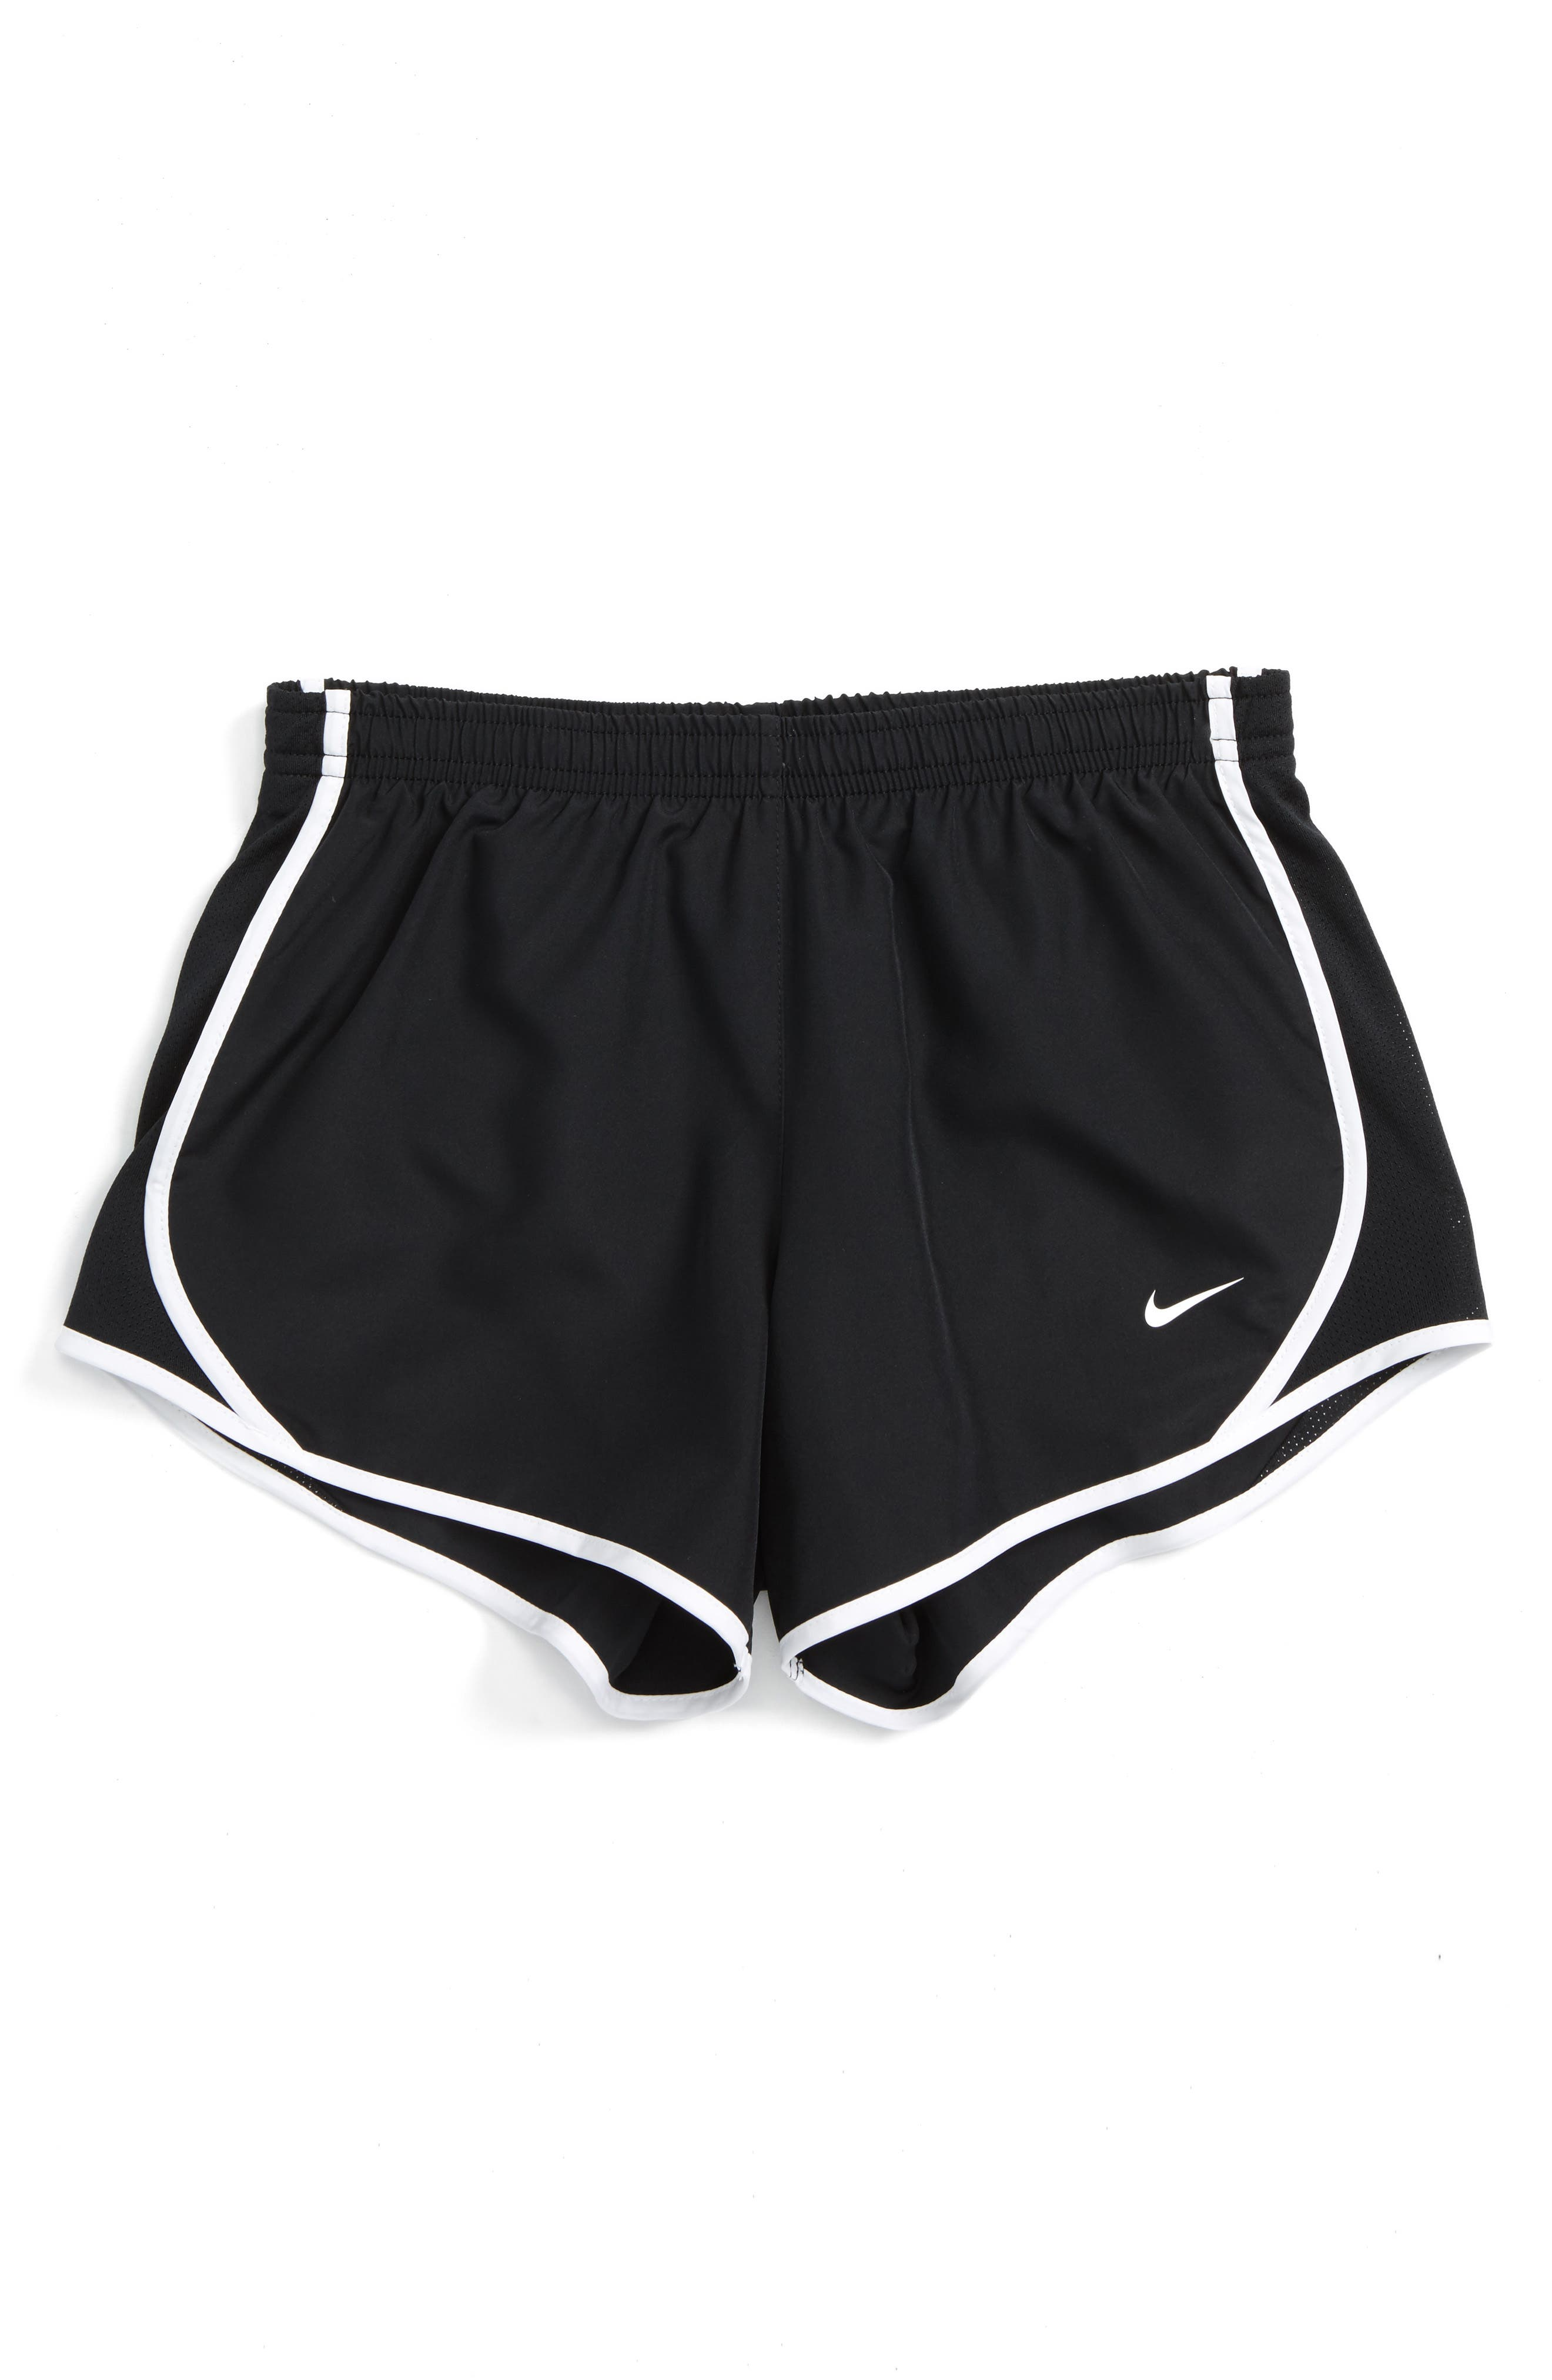 Dry Tempo Running Shorts,                             Main thumbnail 1, color,                             BLACK/ WHITE